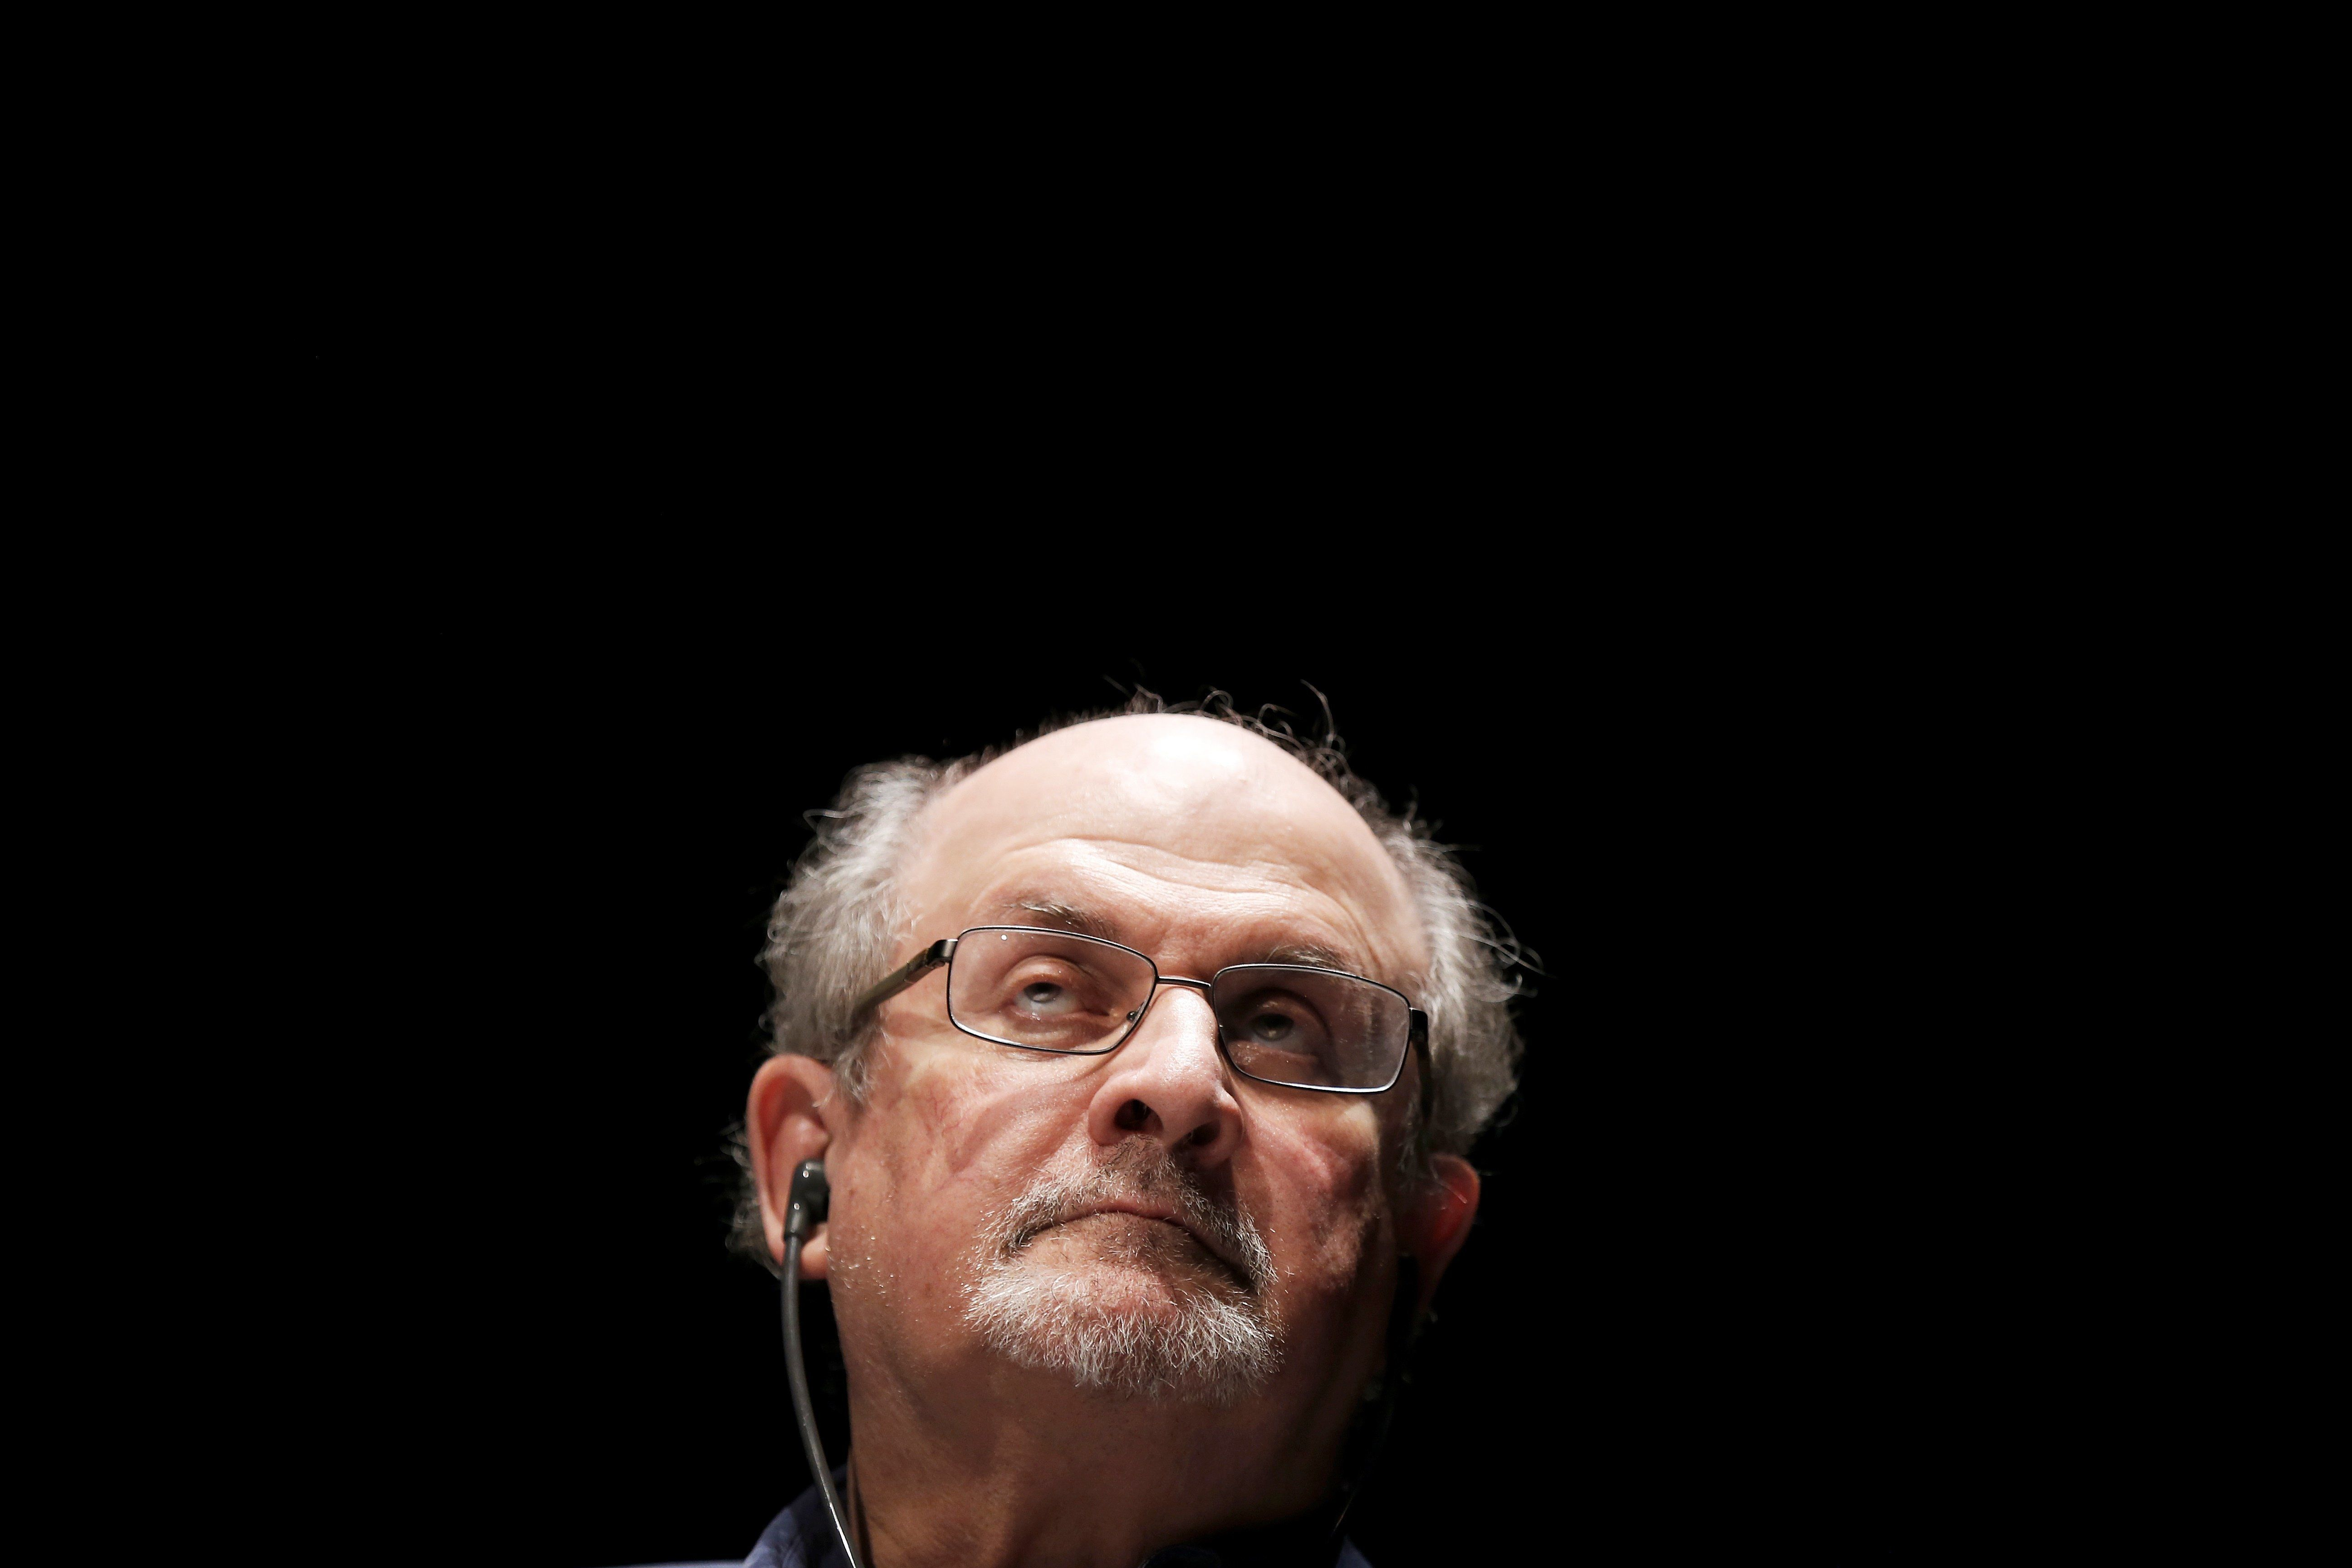 British Indian writer Salman Rushdie attends the opening day of the Positive Economy Forum in Le Havre, northwestern France on September 13, 2016.  / AFP / CHARLY TRIBALLEAU        (Photo credit should read CHARLY TRIBALLEAU/AFP/Getty Images)